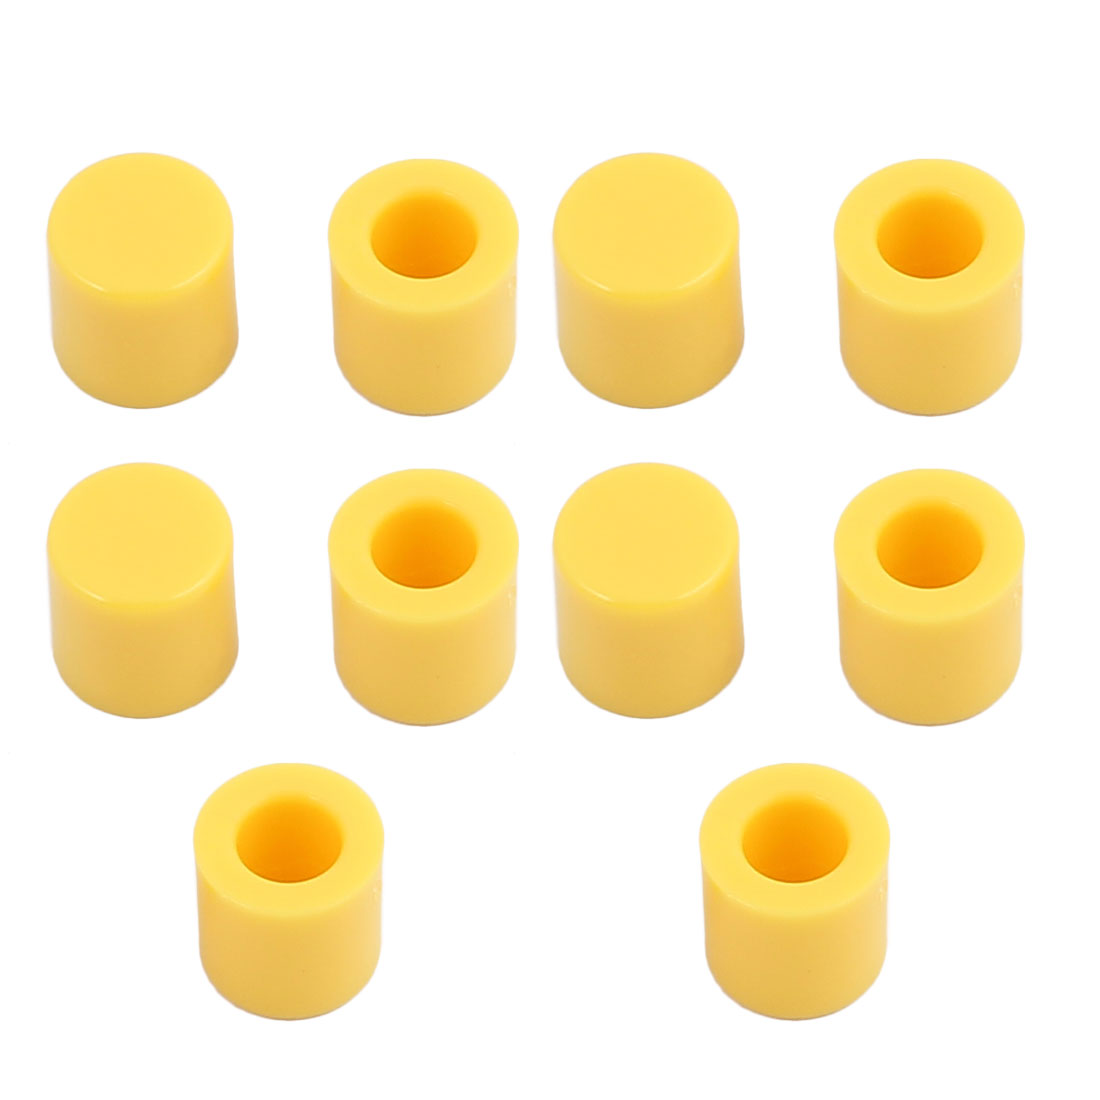 10Pcs Round Shaped Tactile Button Caps Covers f 6x6mm Tact Switch